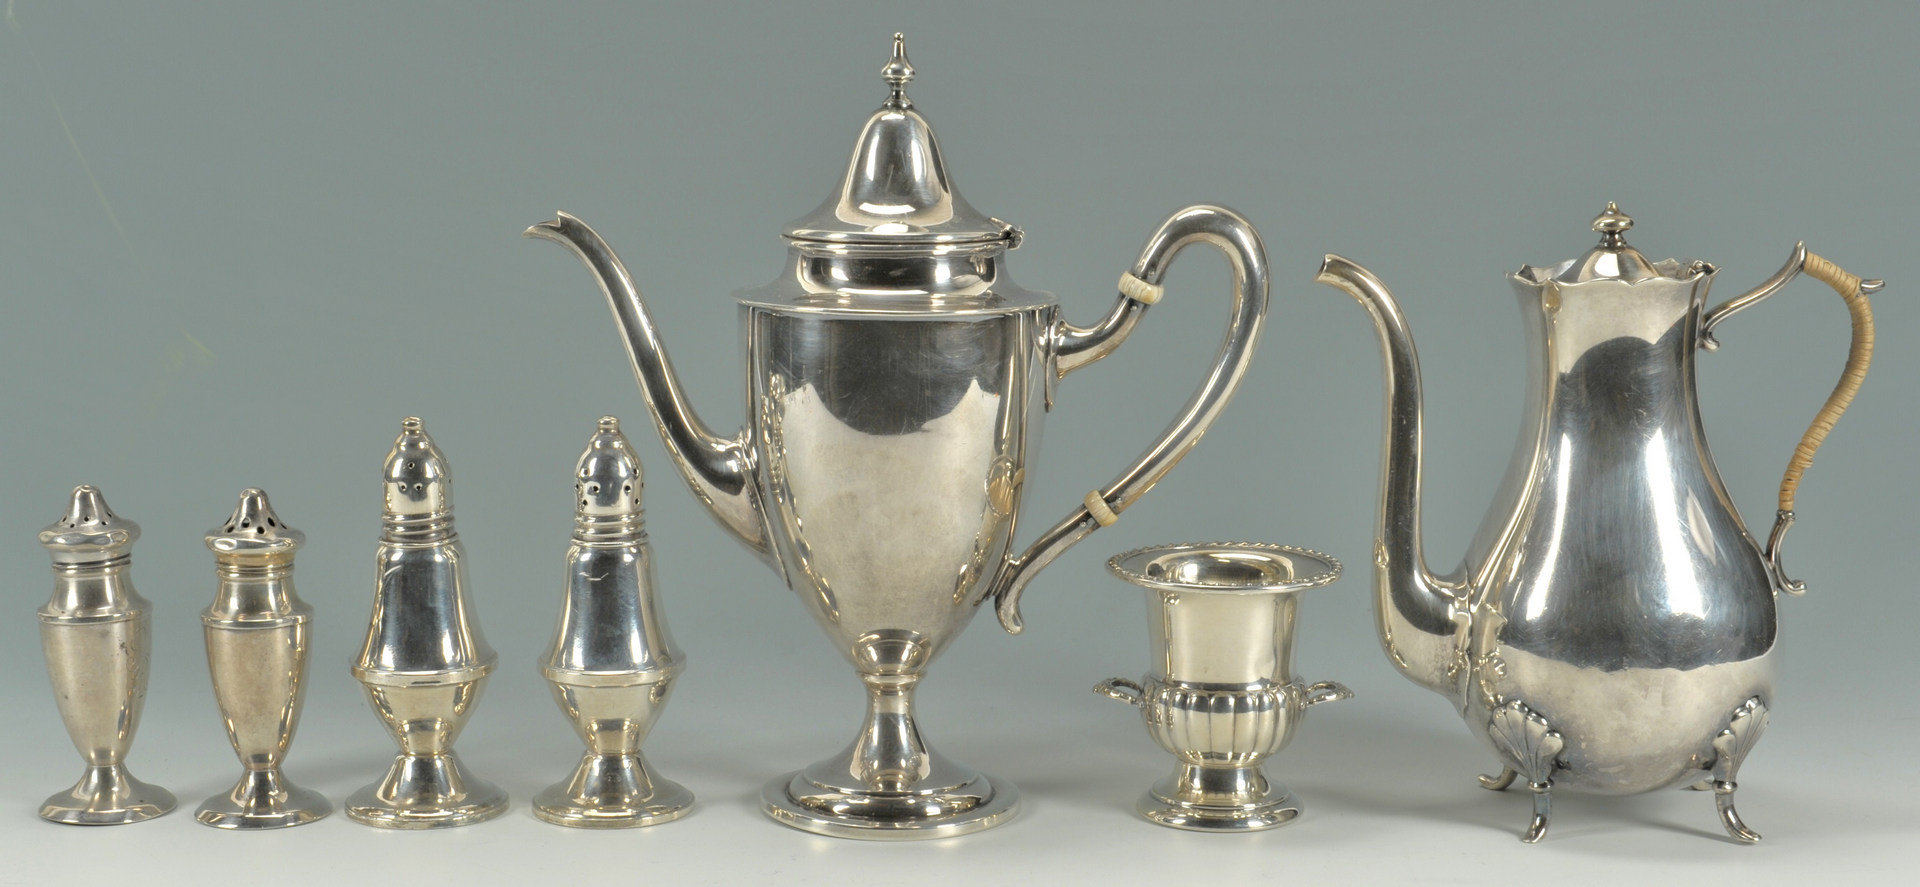 Lot 428: 7 items assorted silver hollowware inc. teapots